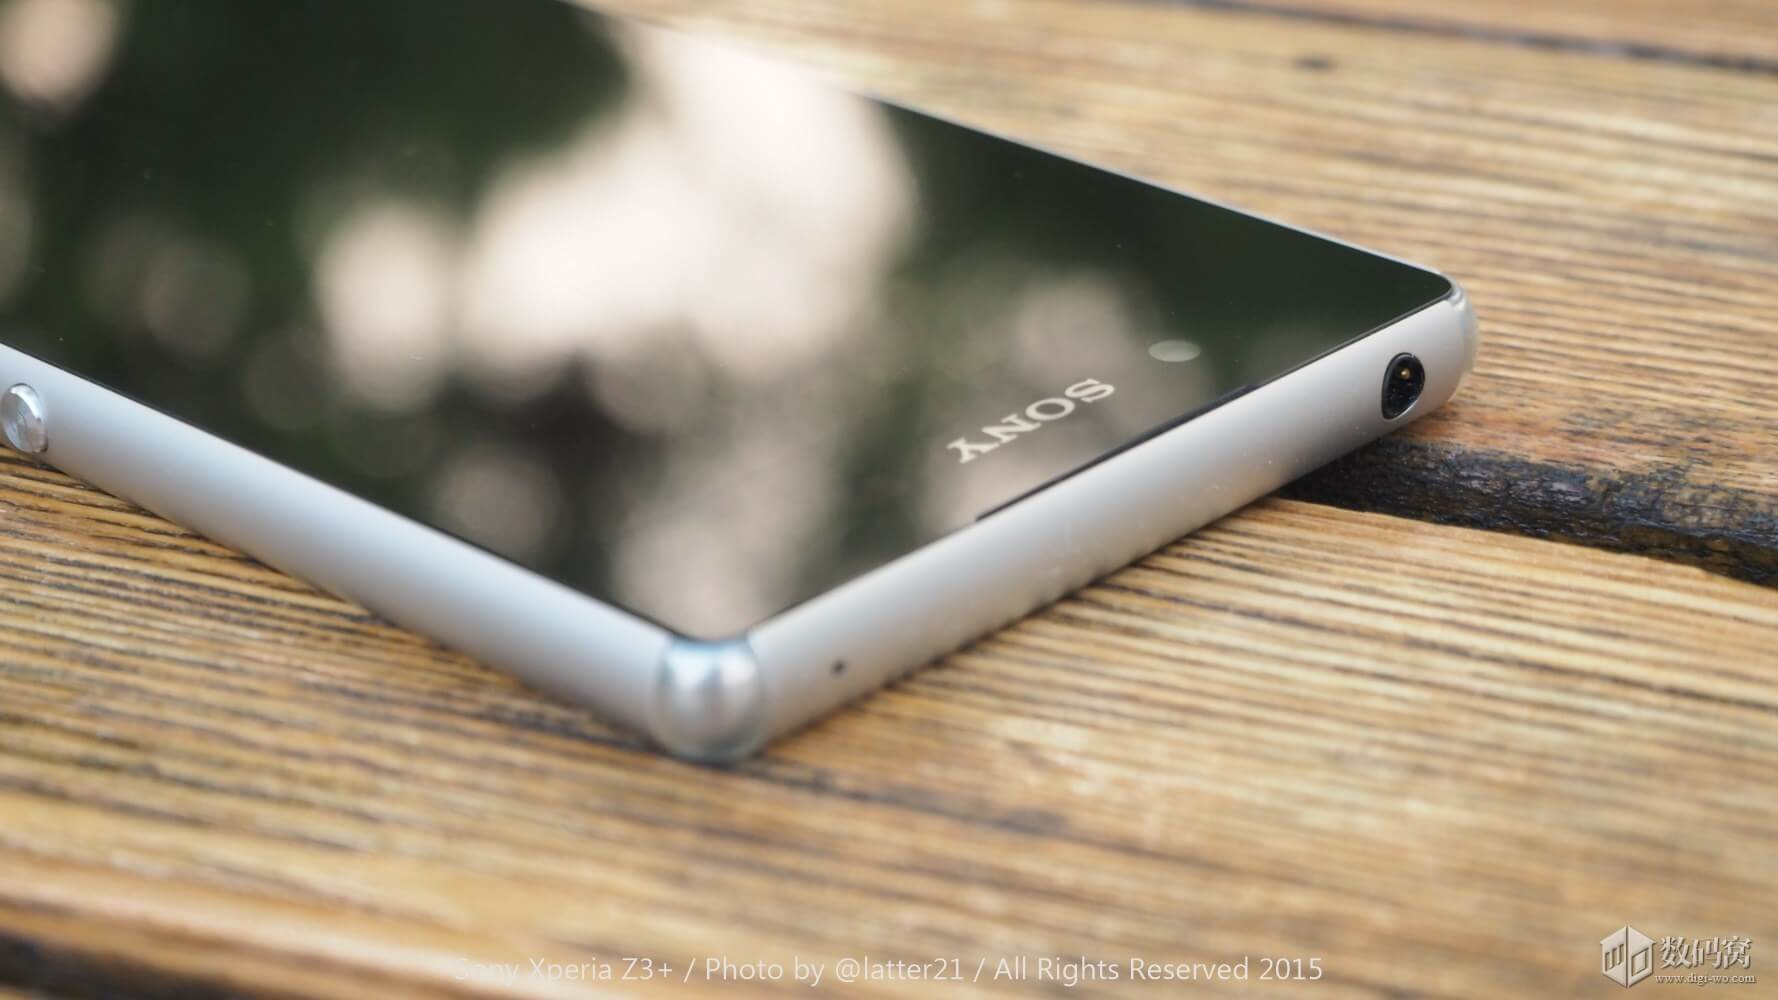 Xperia Z3+ 3.5 mm headphone jack